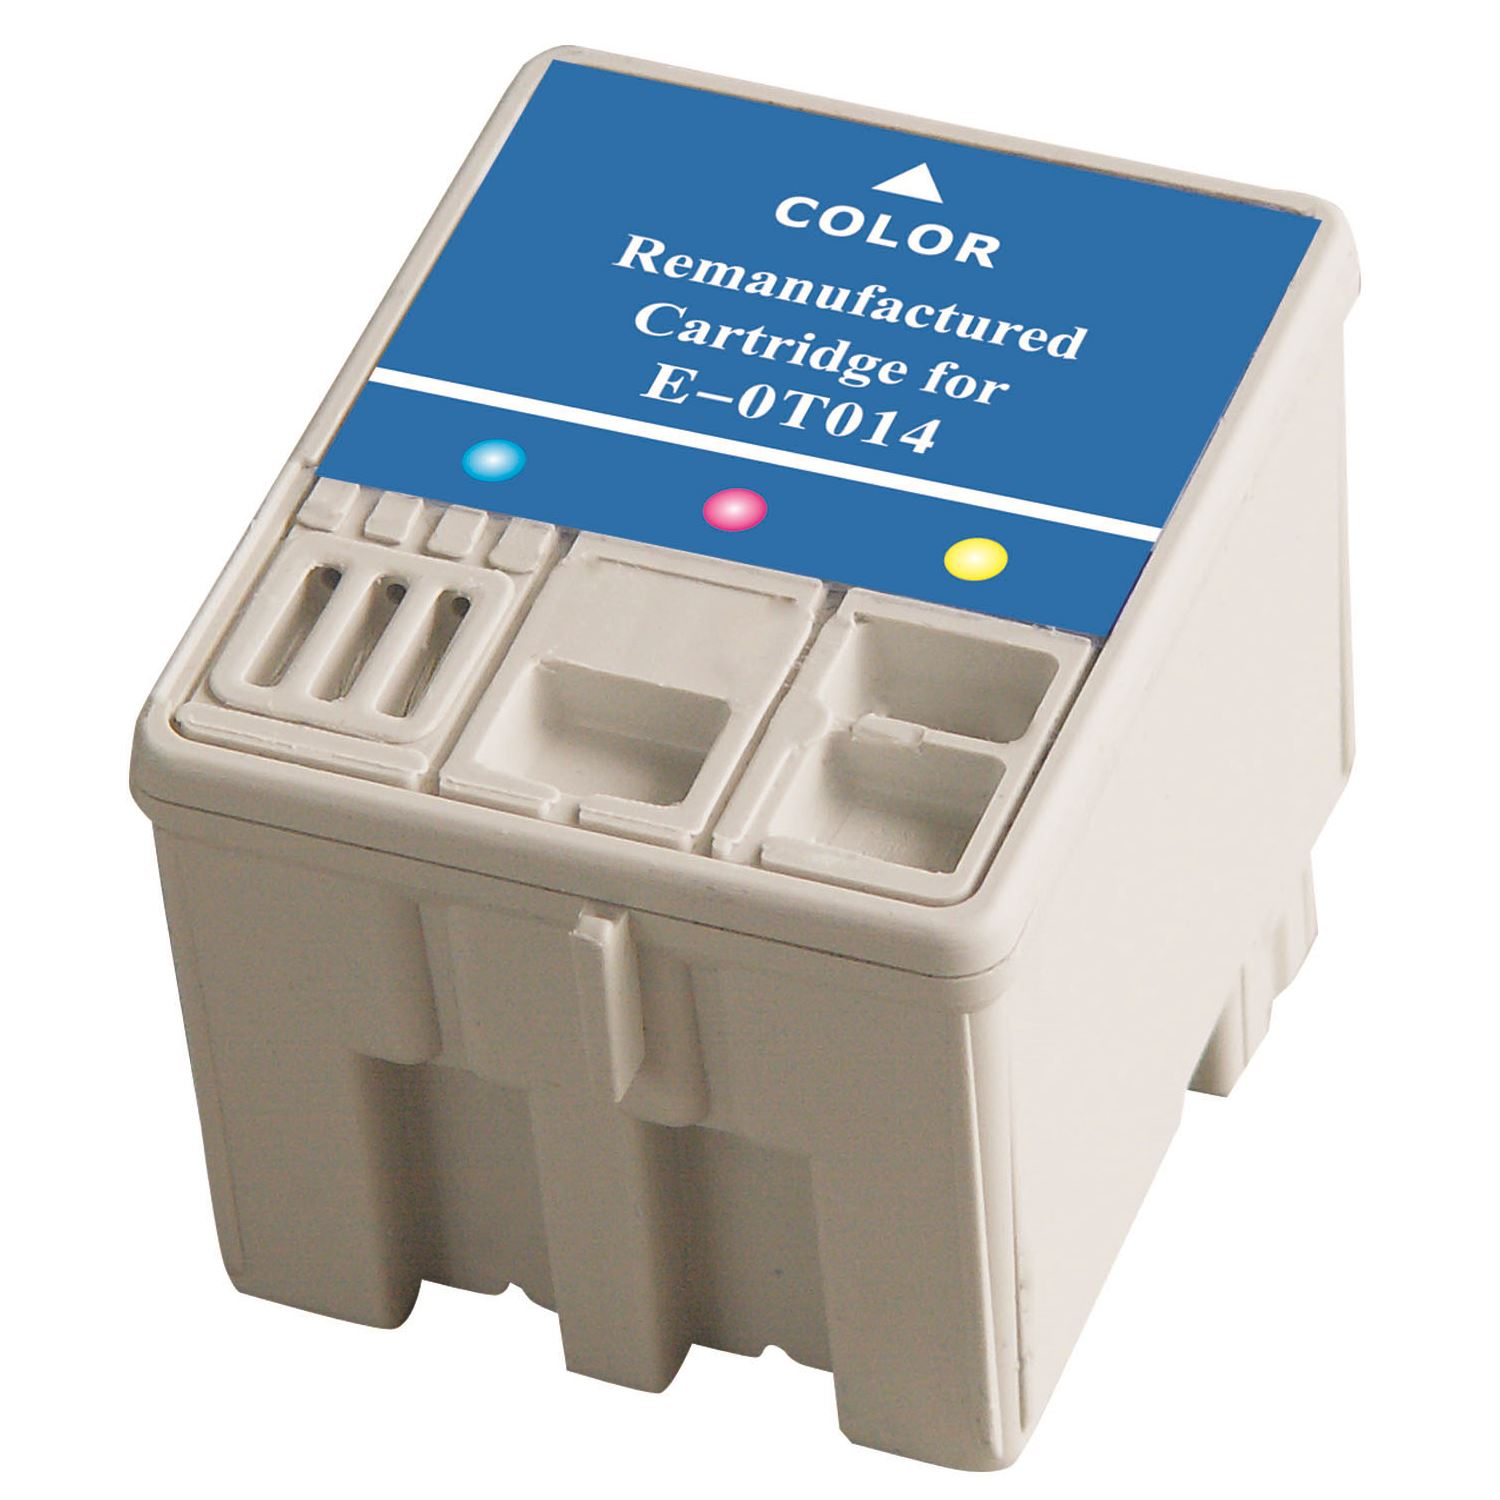 T014201 Ink Cartridge - Epson Remanufactured (Color)